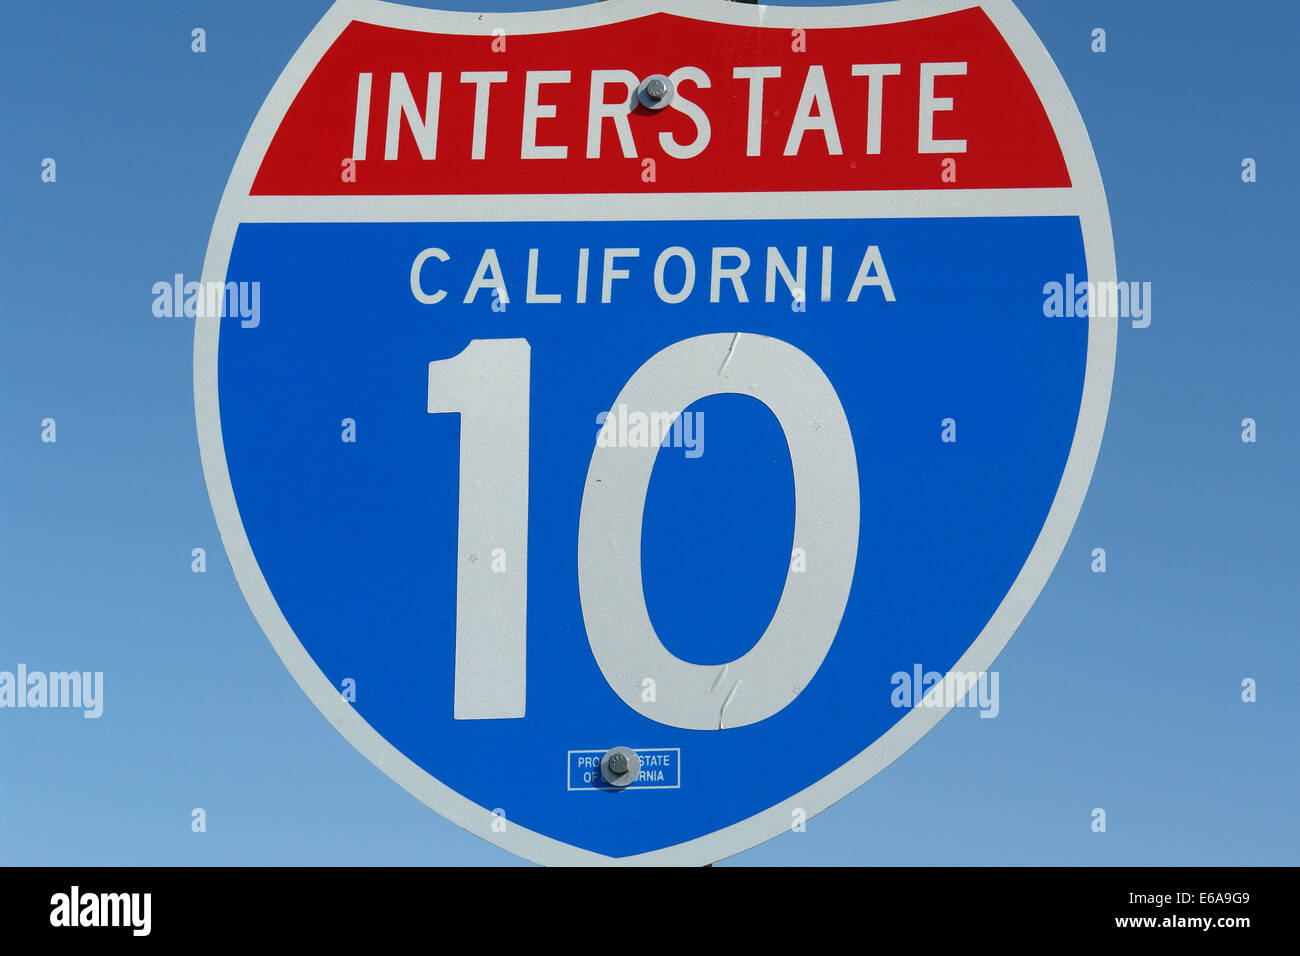 traffic sign,highway,interstate,california - Stock Image